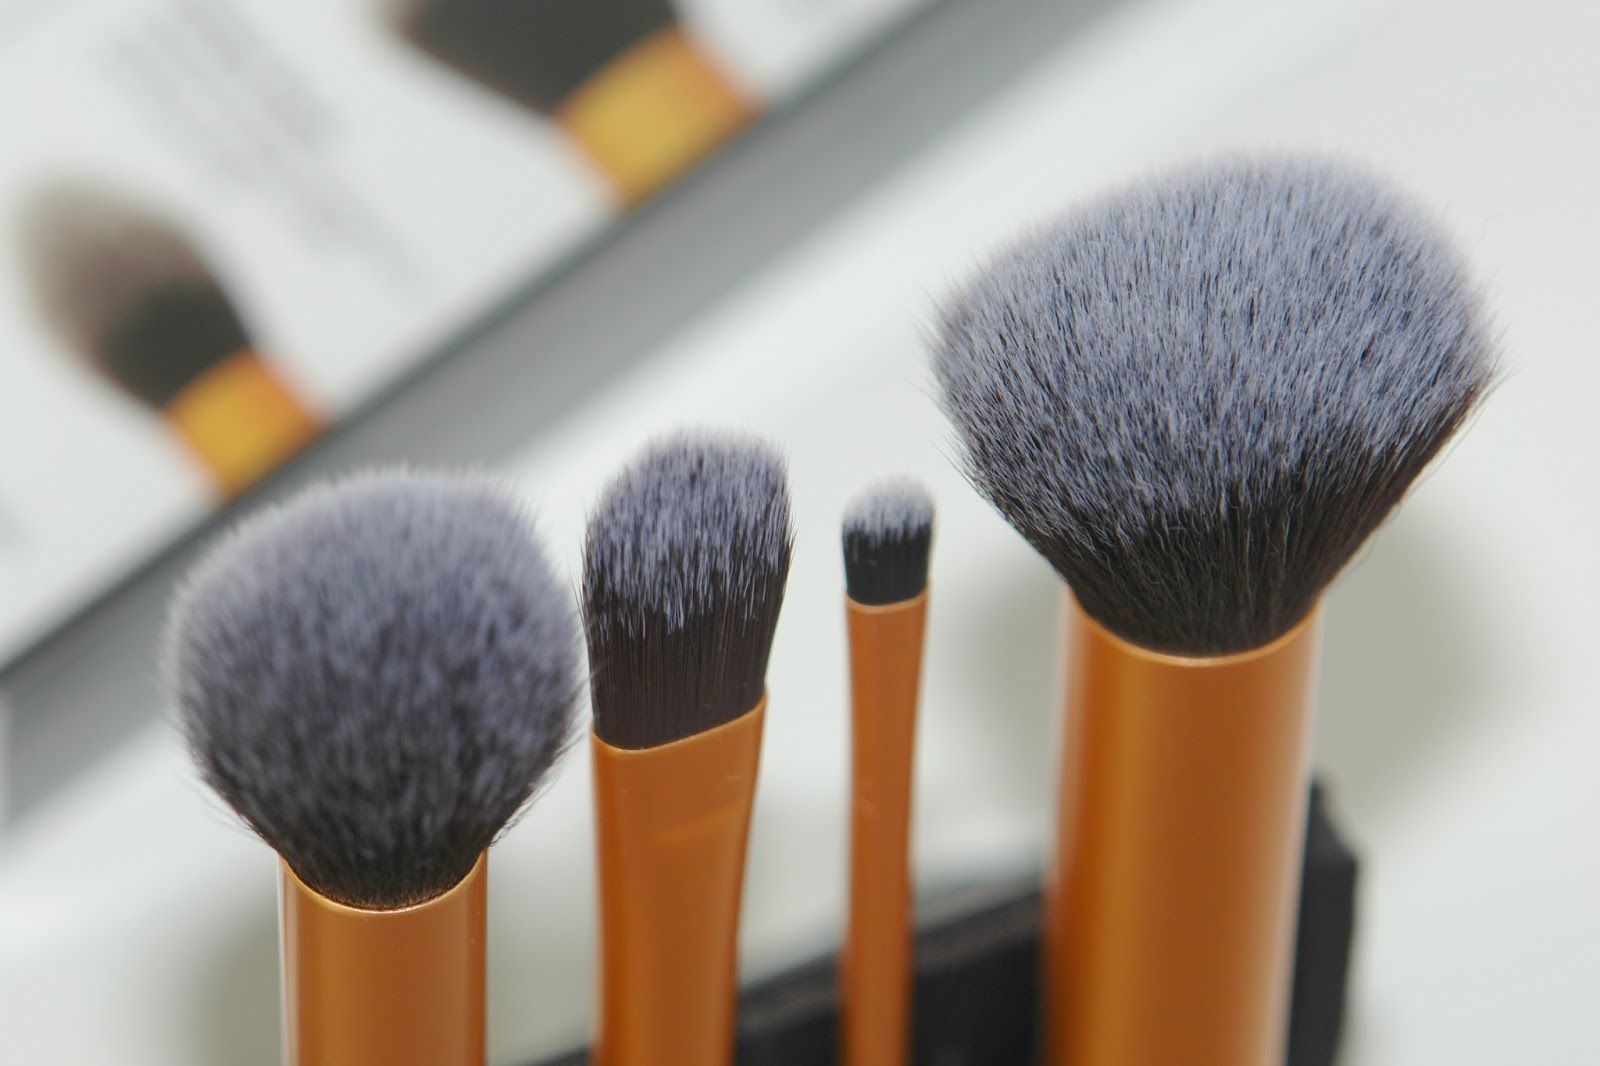 Real Techniques Core Collection review, brushes, make up